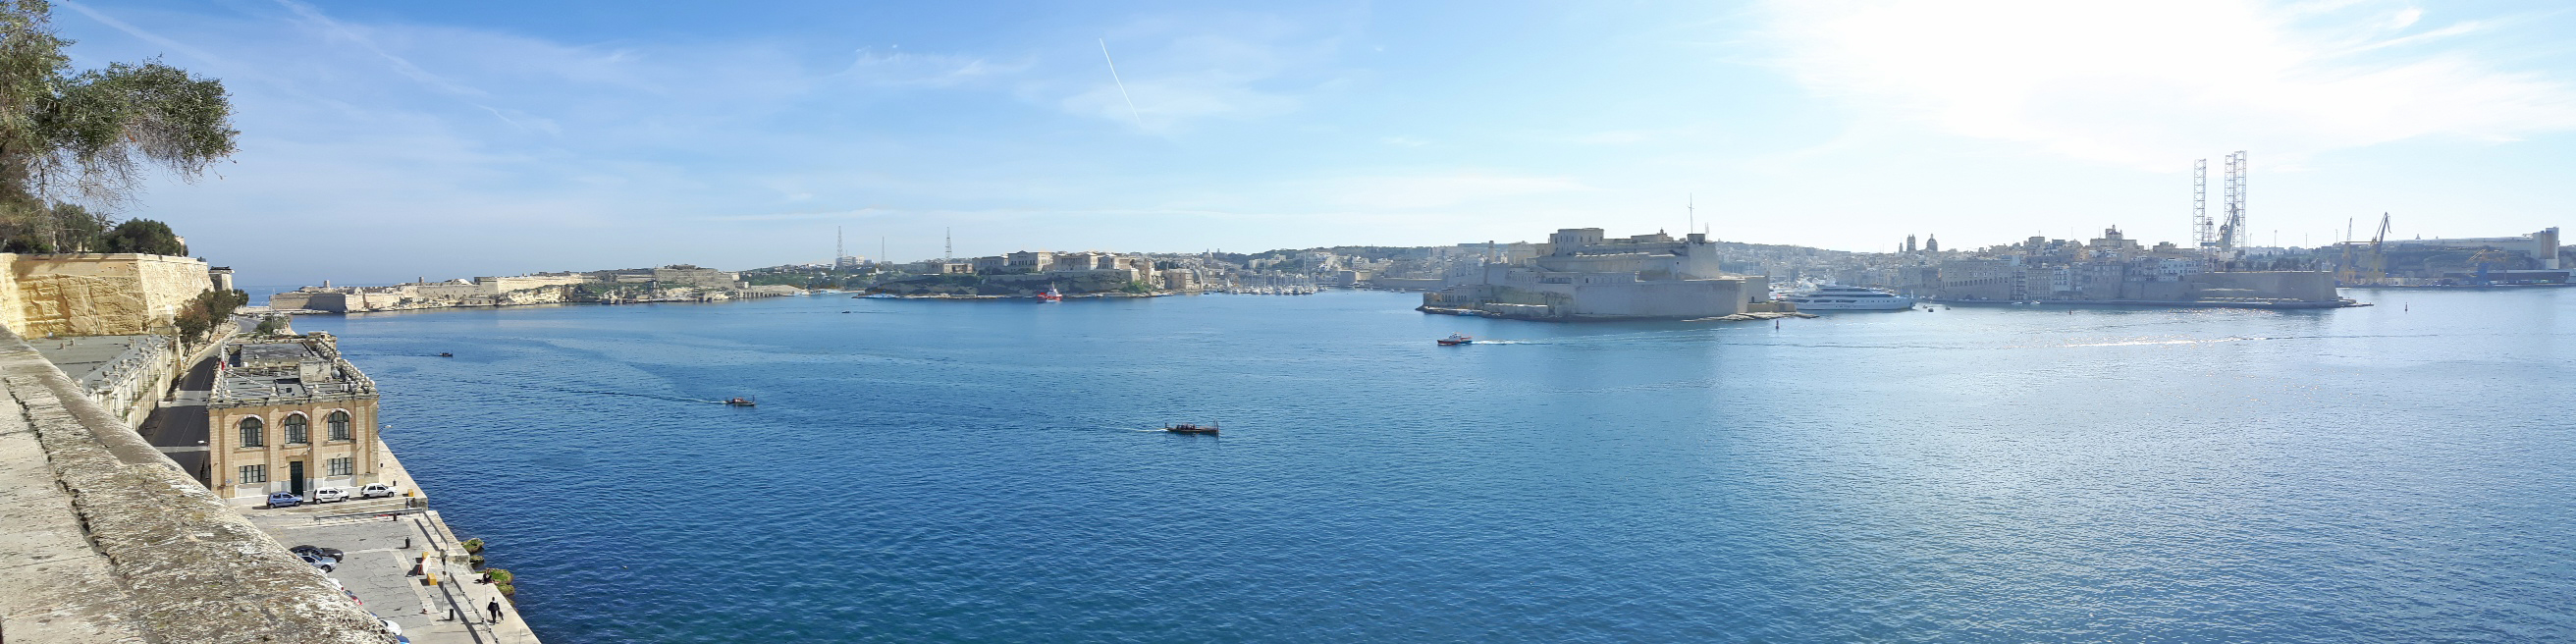 Valletta_Malta_European_Capital_of_Culture_2018